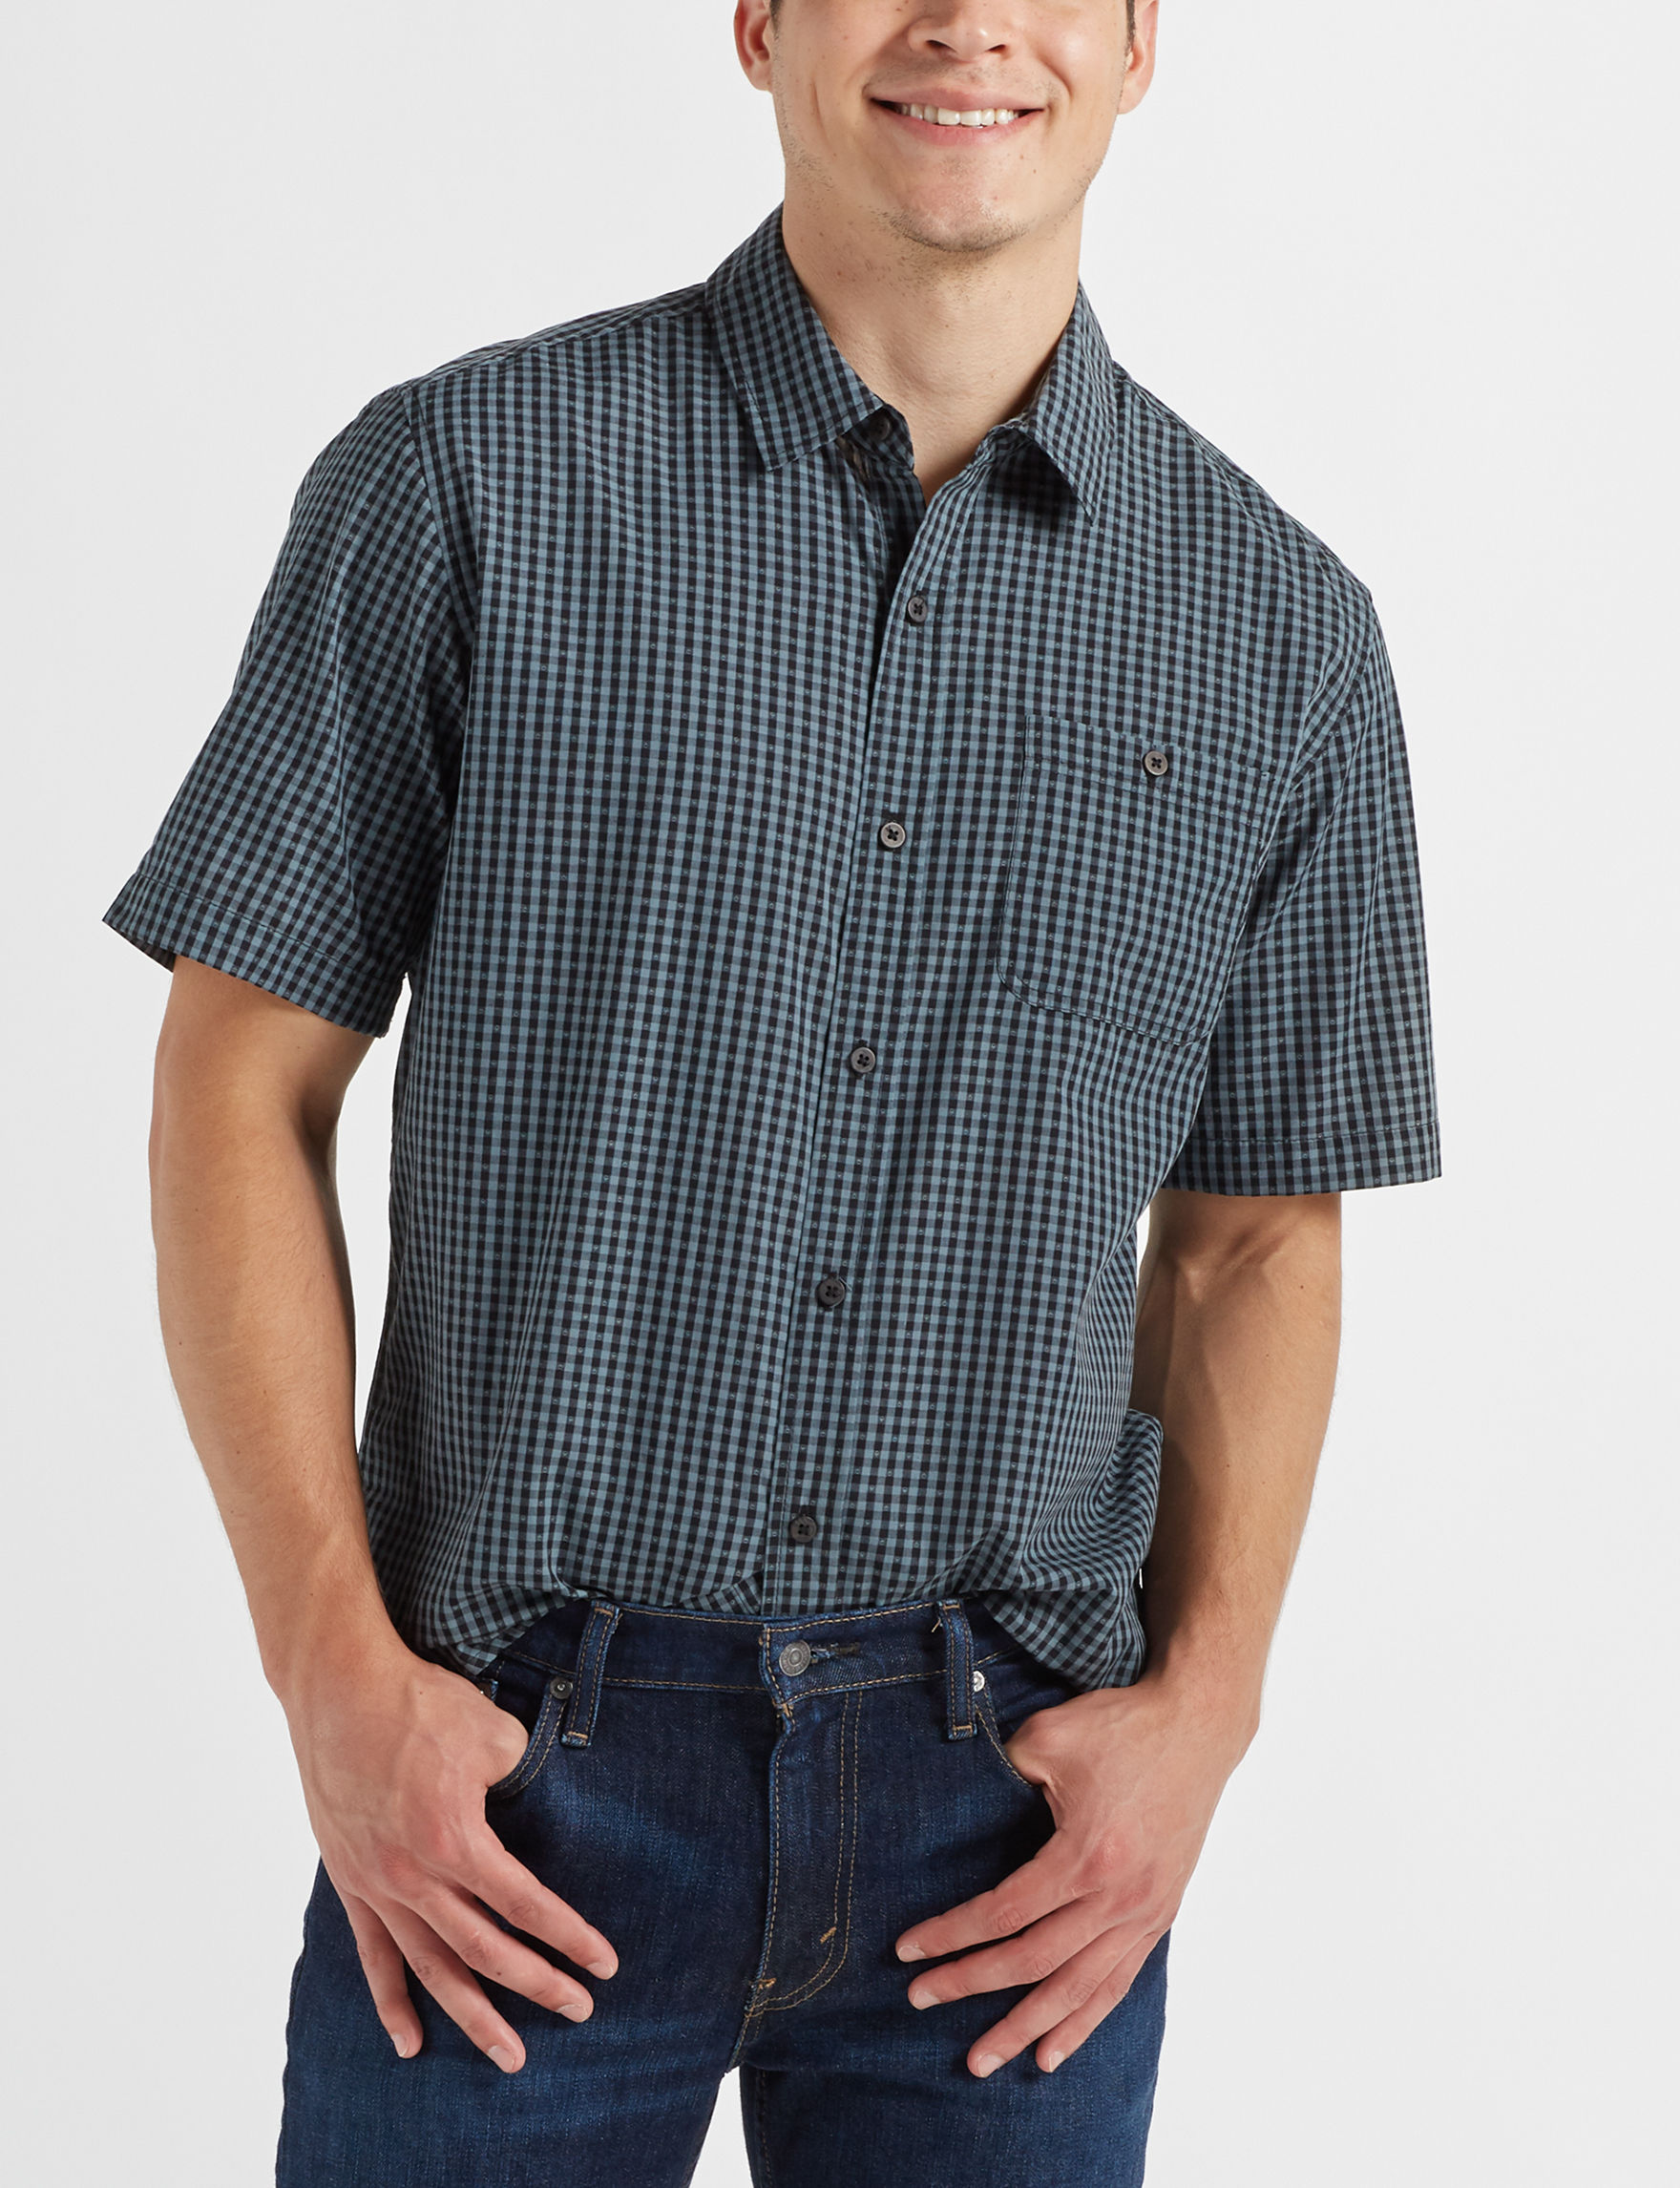 Scope Imports Black / Multi Casual Button Down Shirts